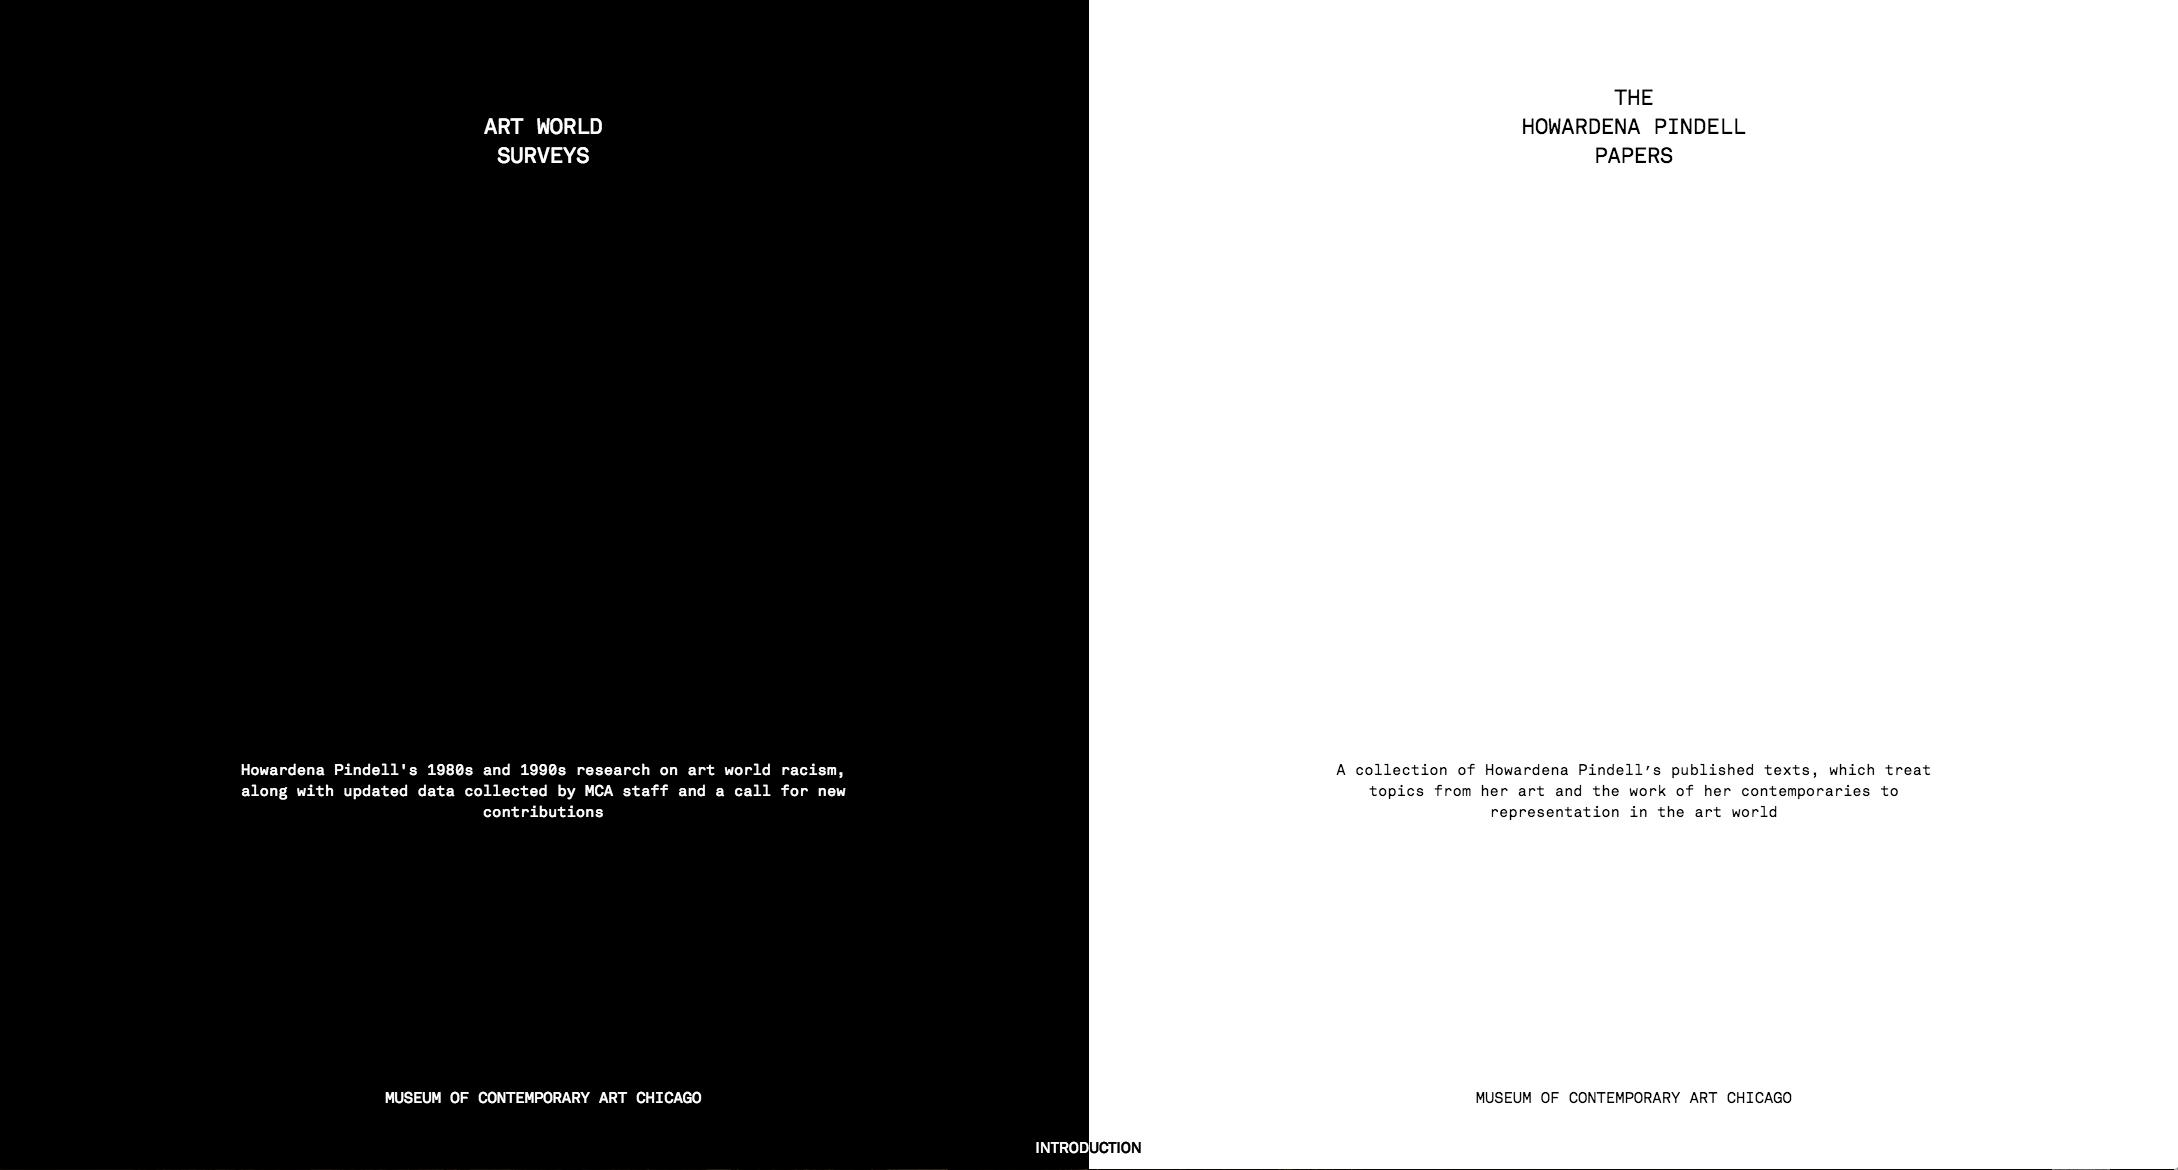 """A digital screenshot shows a half white, half black website with text that reads """"Art World Surveys"""" and """"The Howardena Pindell Papers."""""""